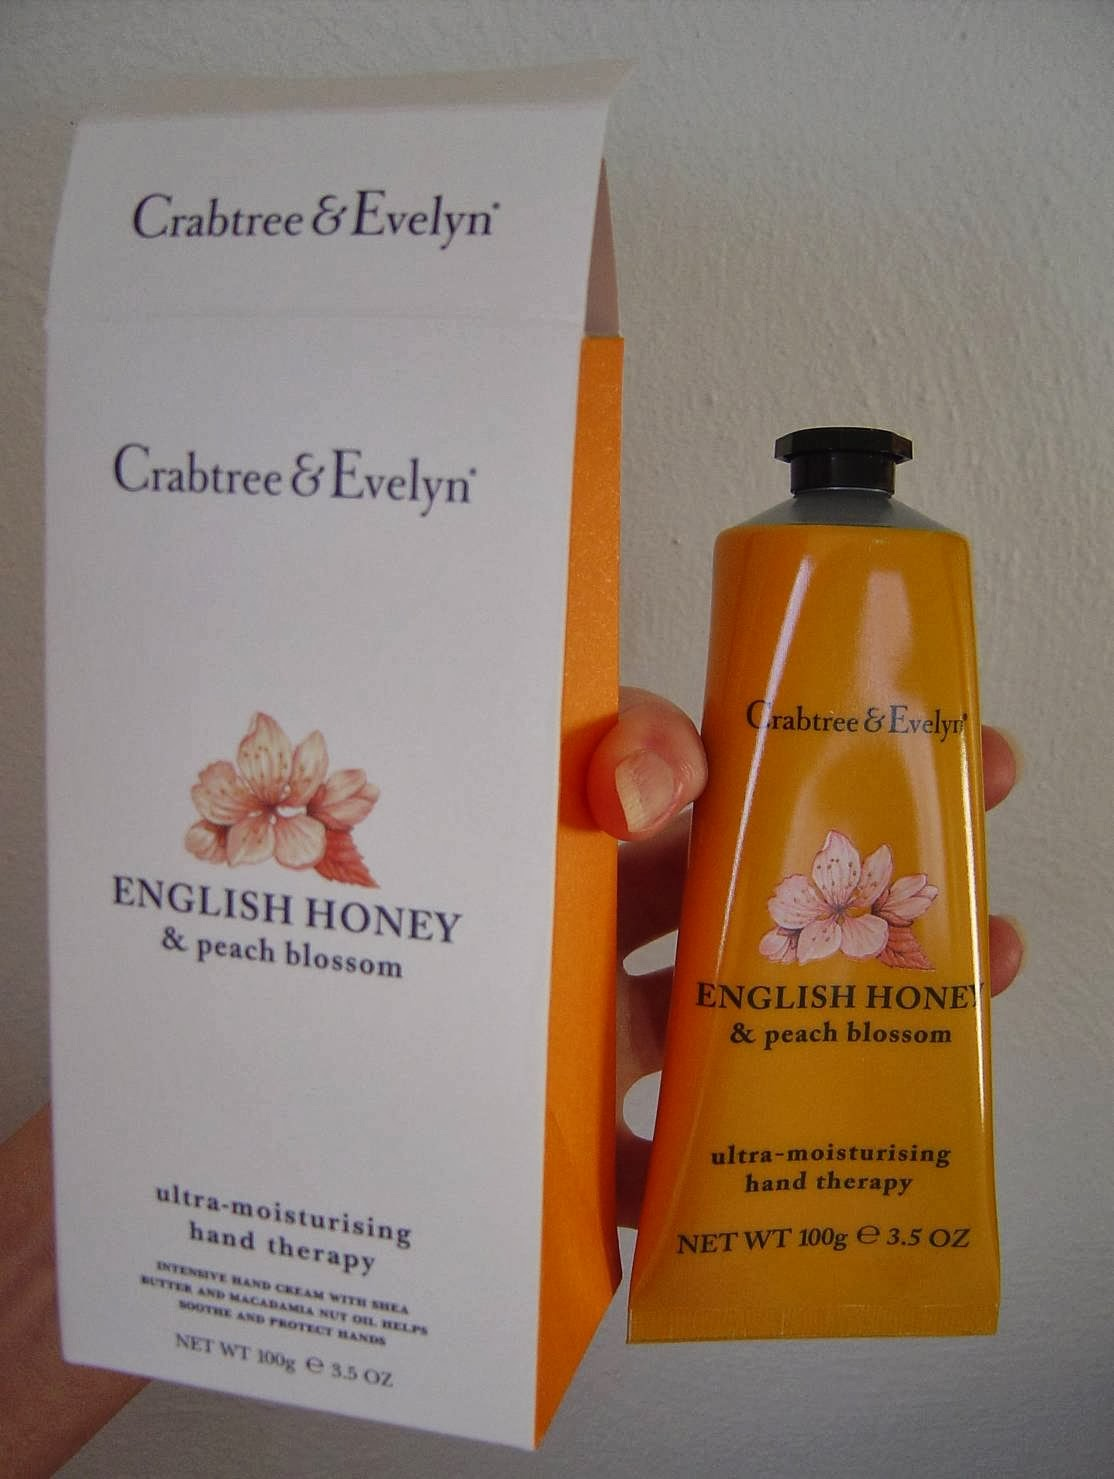 Crabtree & Evelyn's English Honey & Peach Blossom Hand Therapy.jpeg